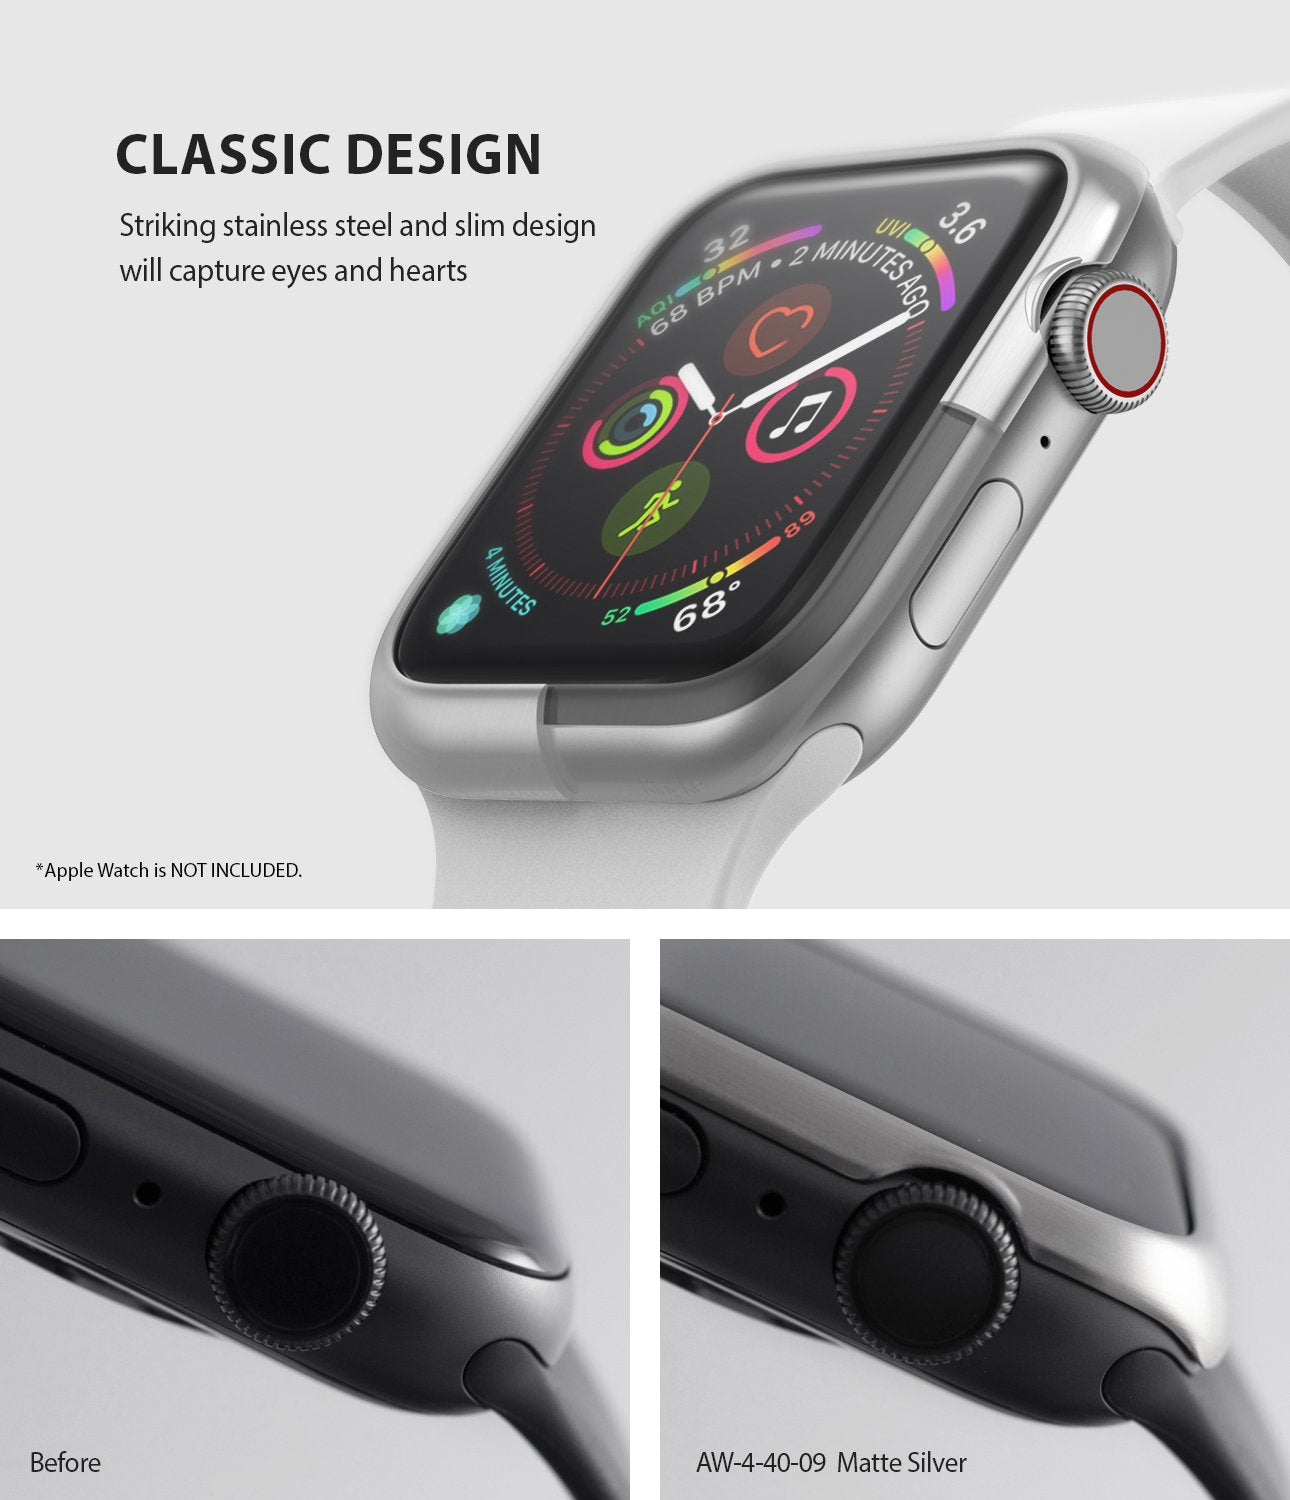 ringke bezel styling 40-09 matte silver stainless steel on apple watch series 6 / 5 / 4 / SE 40mm classic design